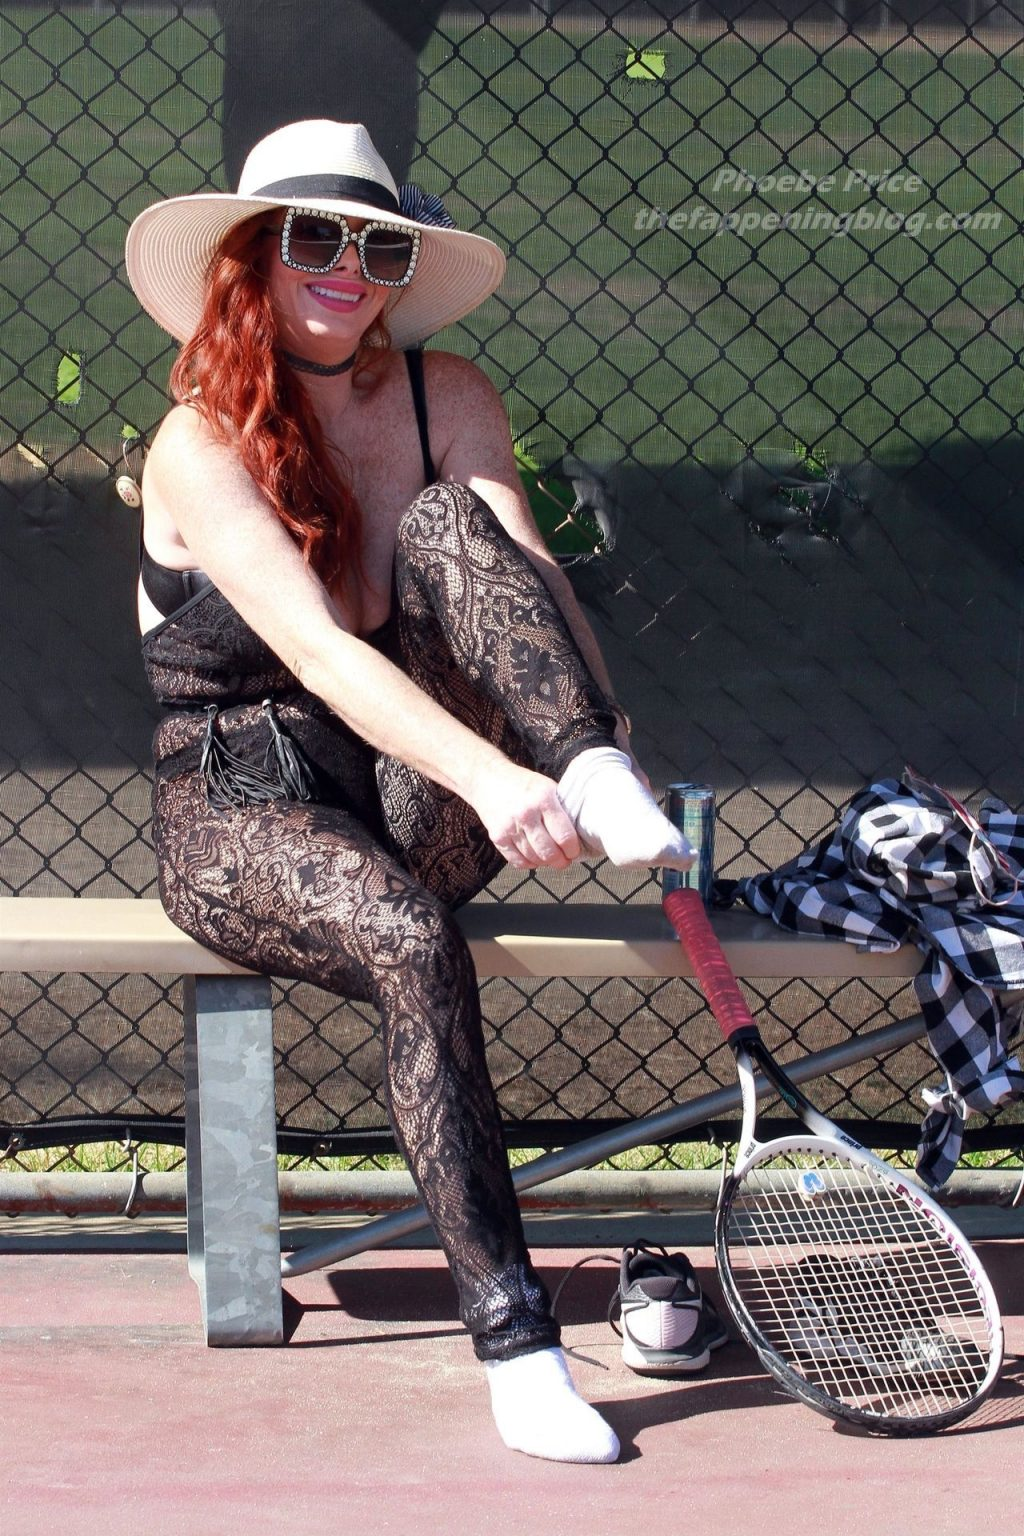 Phoebe Price Goes Racy Lacy on the Tennis Court (34 Photos)